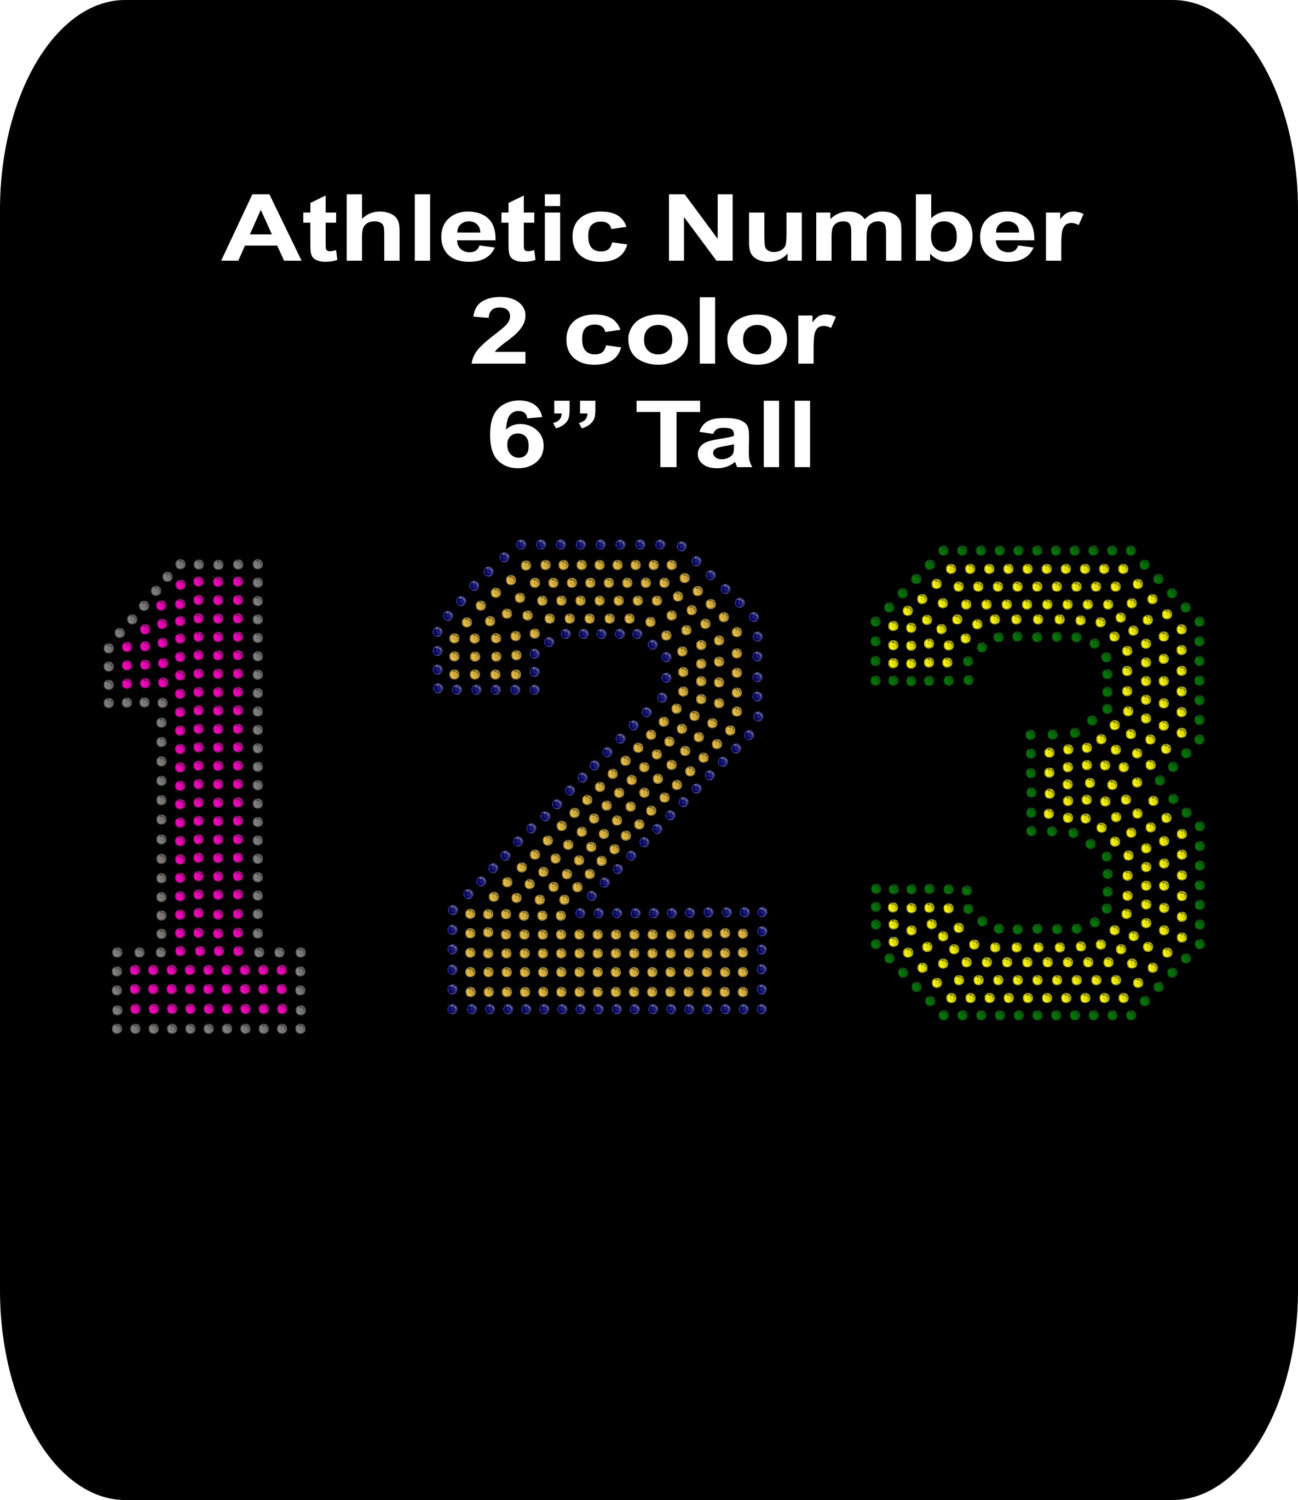 Rhinestone Bling Iron-on T-shirt Transfer - Athletic Number - Football  baseball soccer softball sports Your choice 0-9 Two color 6 In tall sold by